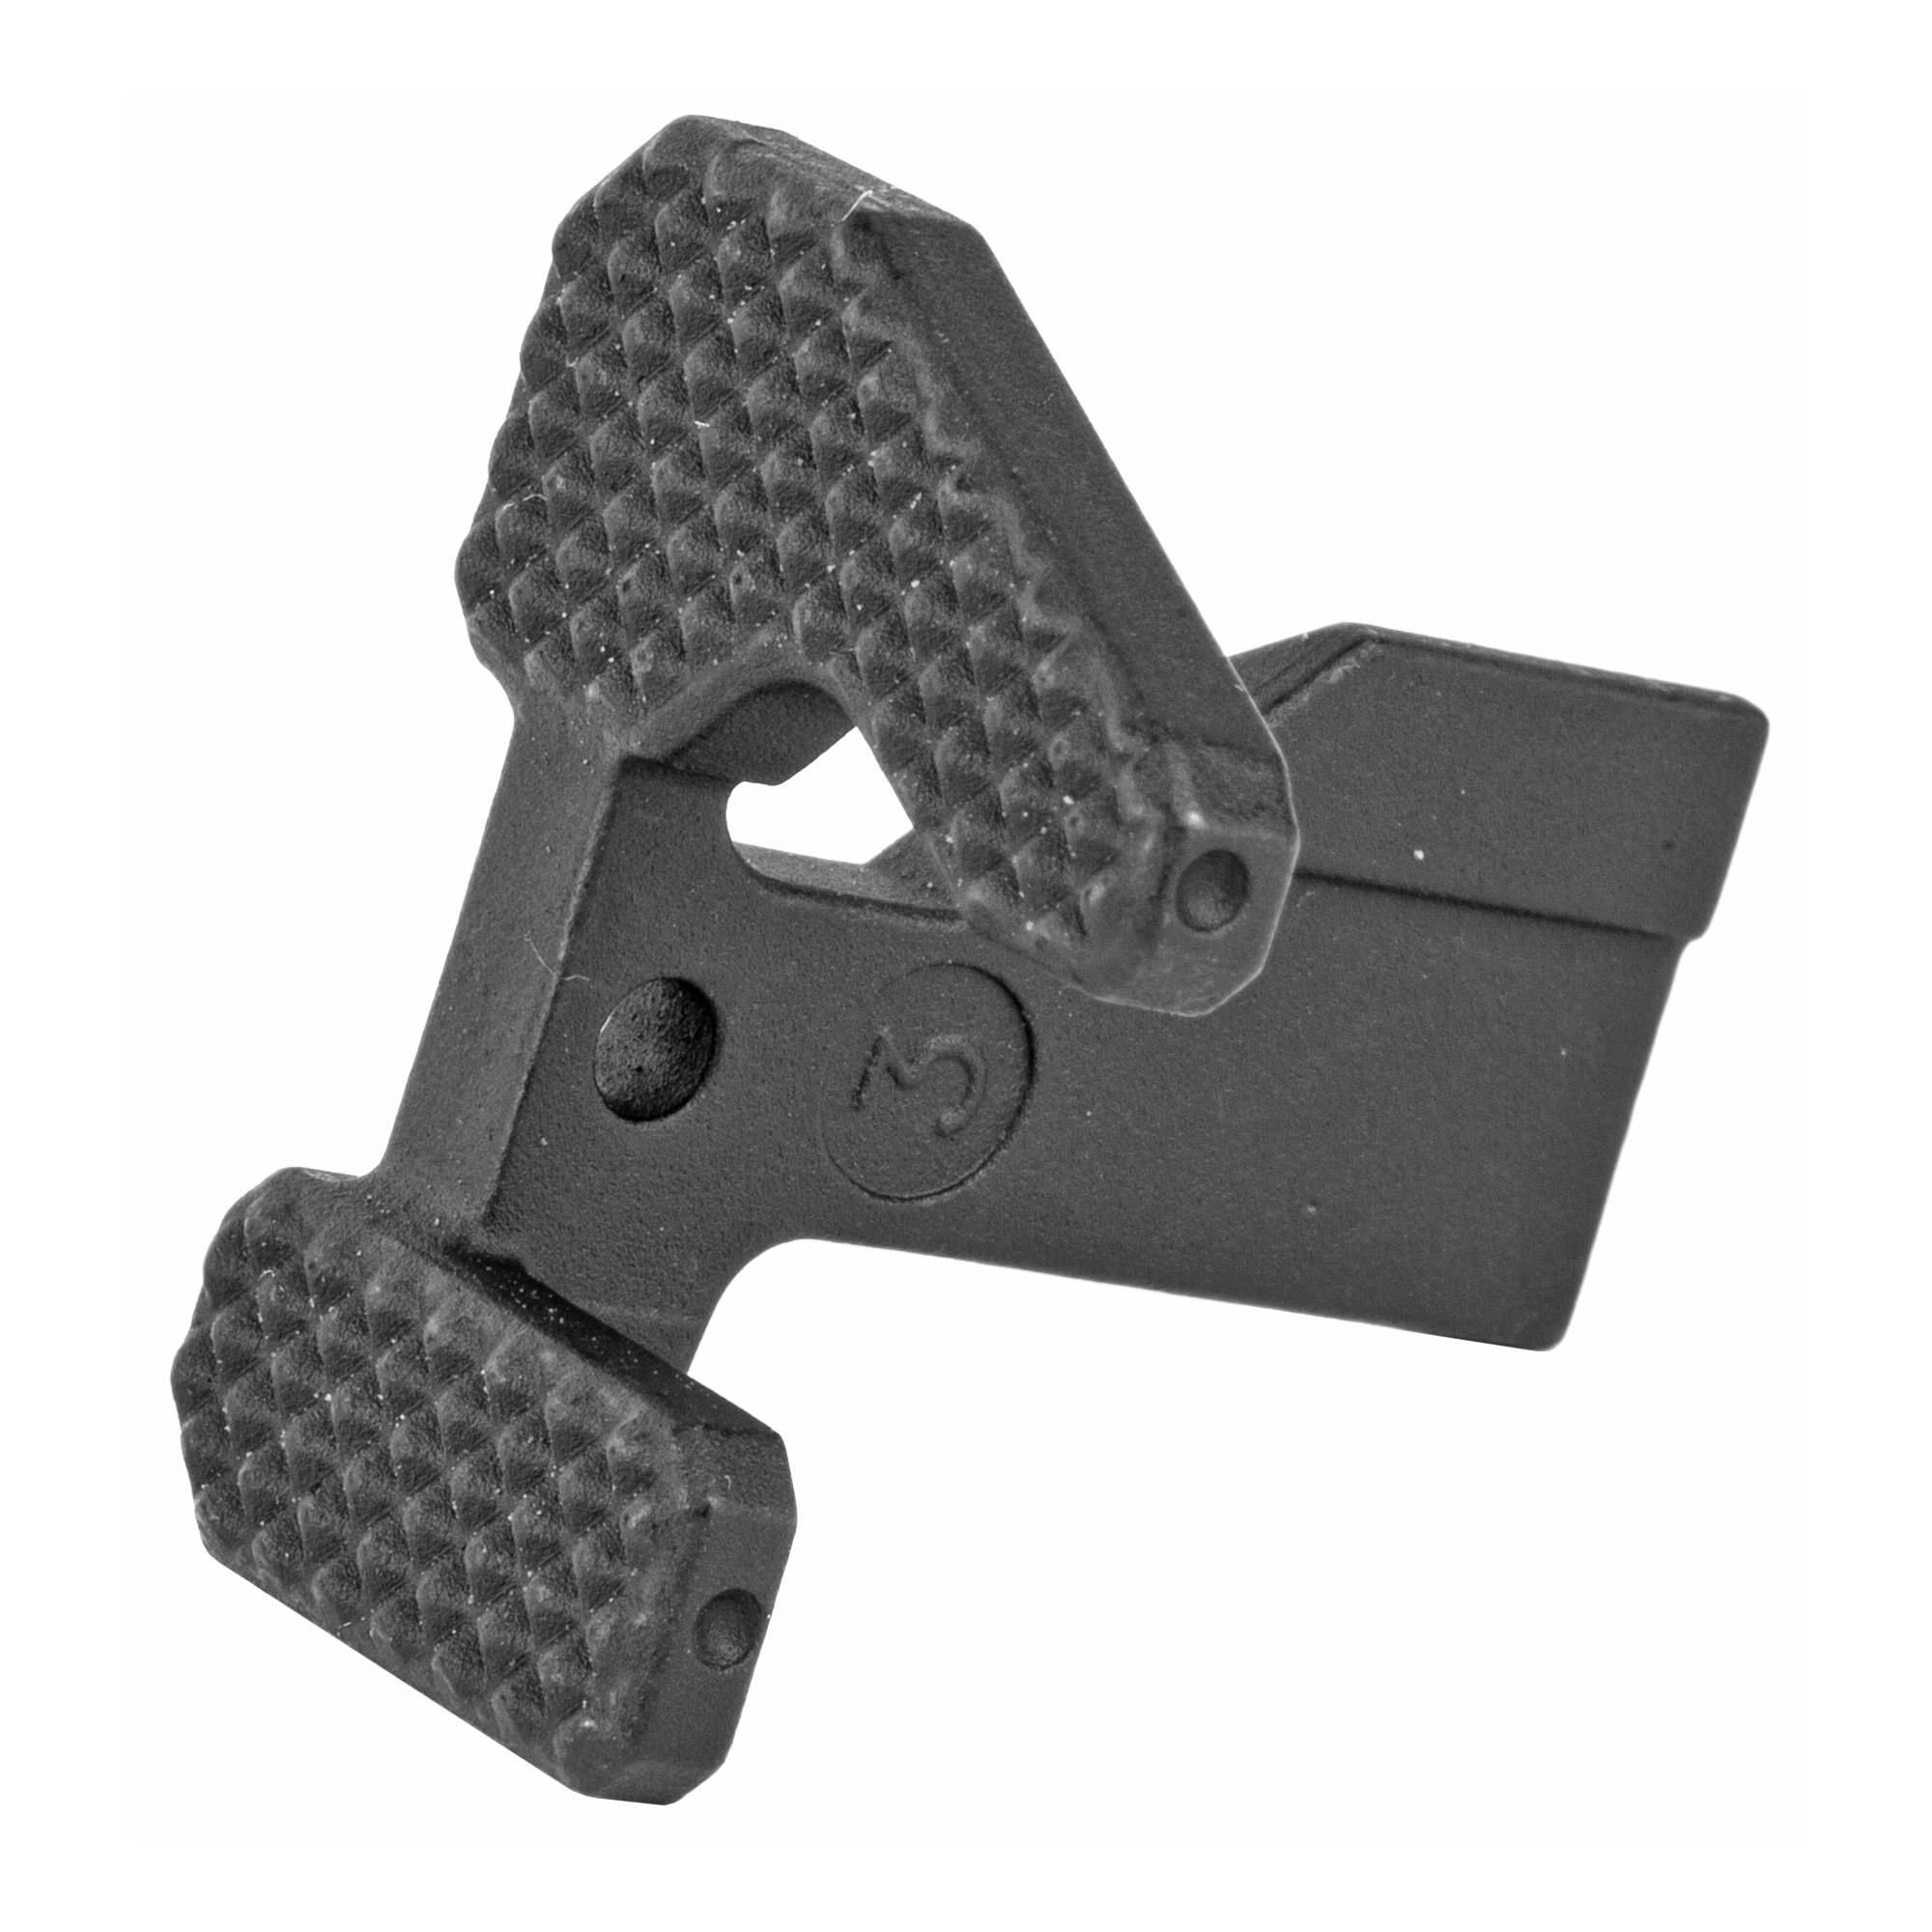 """The Geissele Maritime Bolt Catch is designed with the warfighter in mind and will work with any lower receiver designed to accept a mil-spec M16/M4 Carbine bolt catch. The increased surface area promotes ease of function when locking back the bolt or releasing the bolt after a magazine change. In addition"""" the extended controls add an increased functionality for left handed shooters who no longer have to break their grip to manipulate the bolt catch. Left handed shooters can easily reach the controls using the index finger of their left hand making magazine changes and locking the bolt back much more fast and efficient. Aggressive checkering covers the surface of the levers giving the Geissele Maritime Bolt Catch a textured surface that enables positive feedback to the shooters hand when being used with gloves or at night. Manufactured from properly heat treated 8620 steel and manganese phosphate coated"""" the Geissele Maritime Bolt Catch is intended to serve as an enhanced mil-spec replacement and assist in giving our warfighters overmatch capability with the M16/M4 carbine platform."""